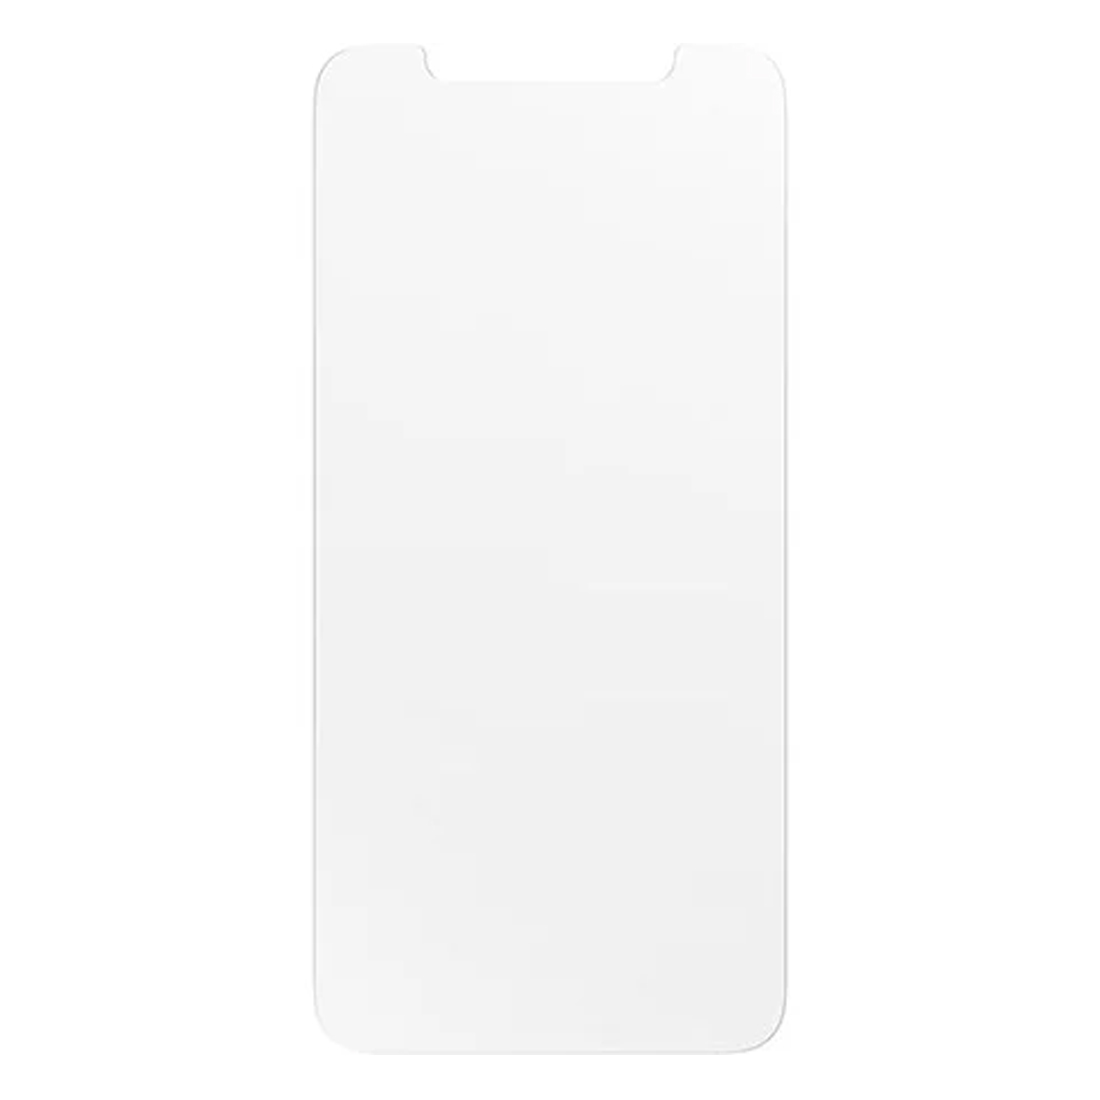 Otterbox Alpha Glass Screen Protector for Apple iPhone 11 Pro